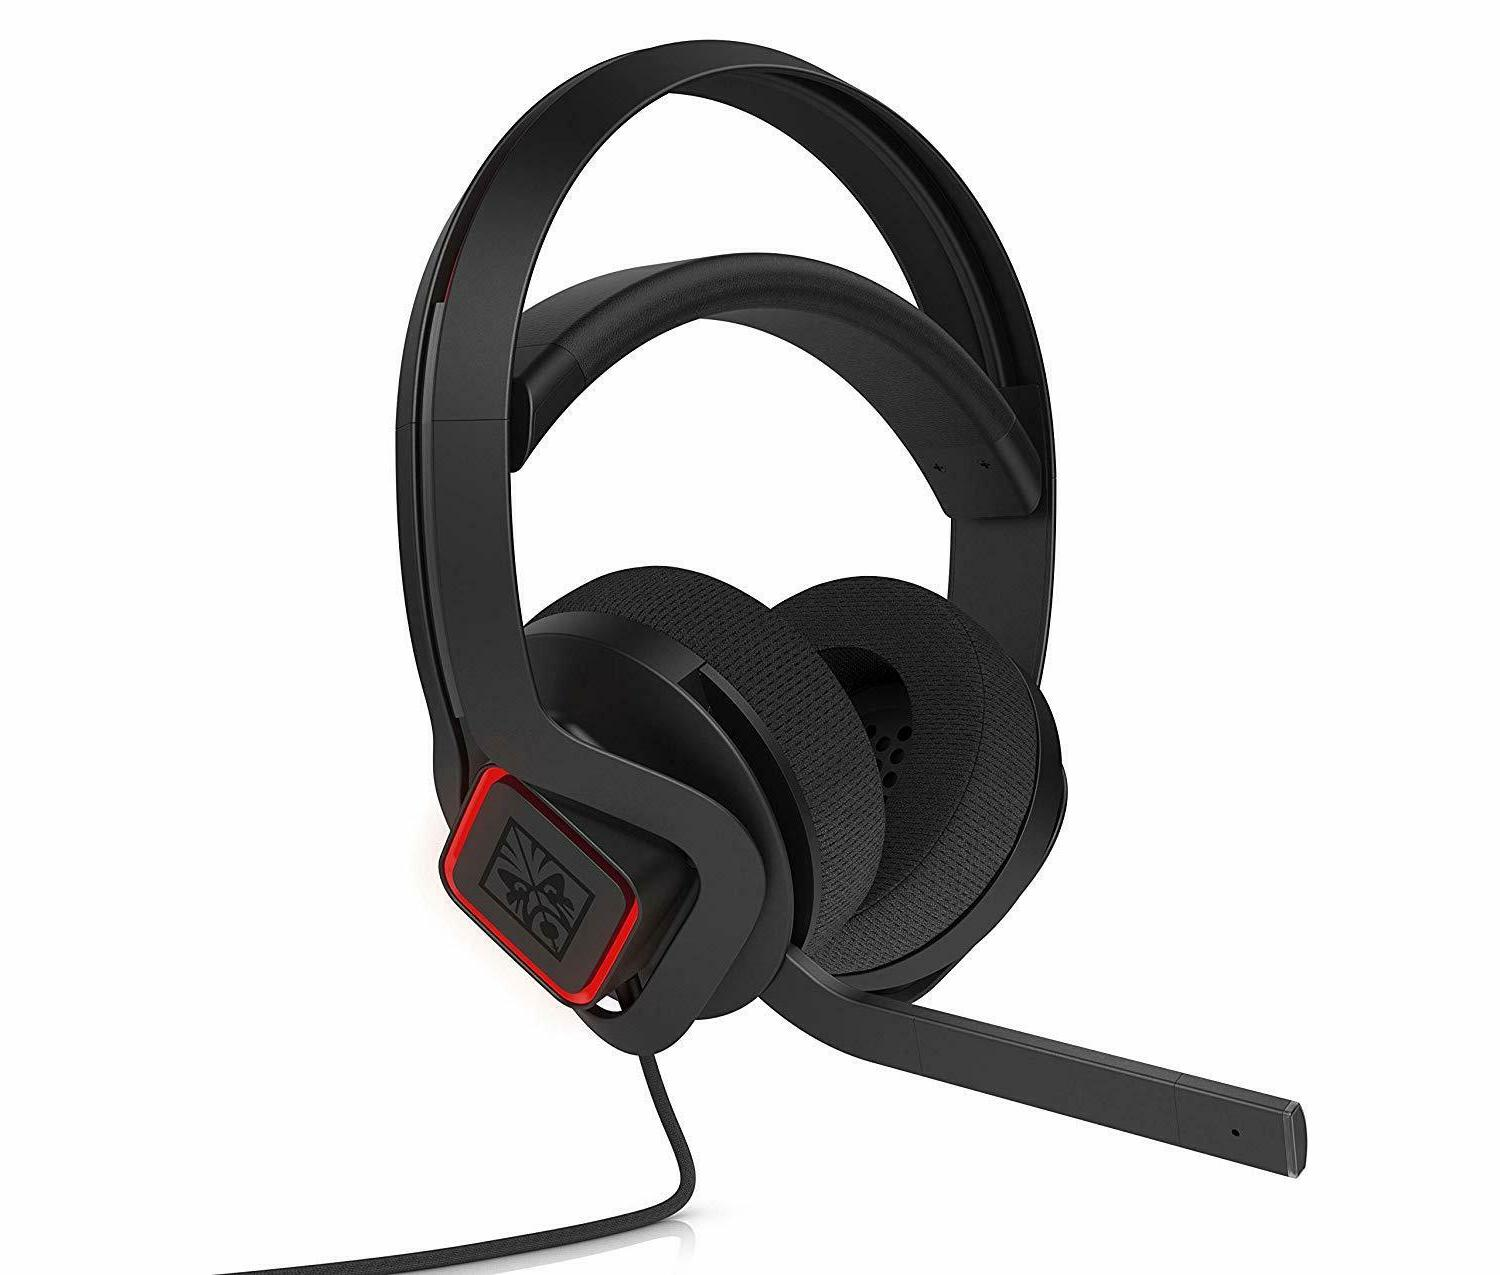 OMEN by HP Mindframe PC Gaming Headset with FrostCap Active